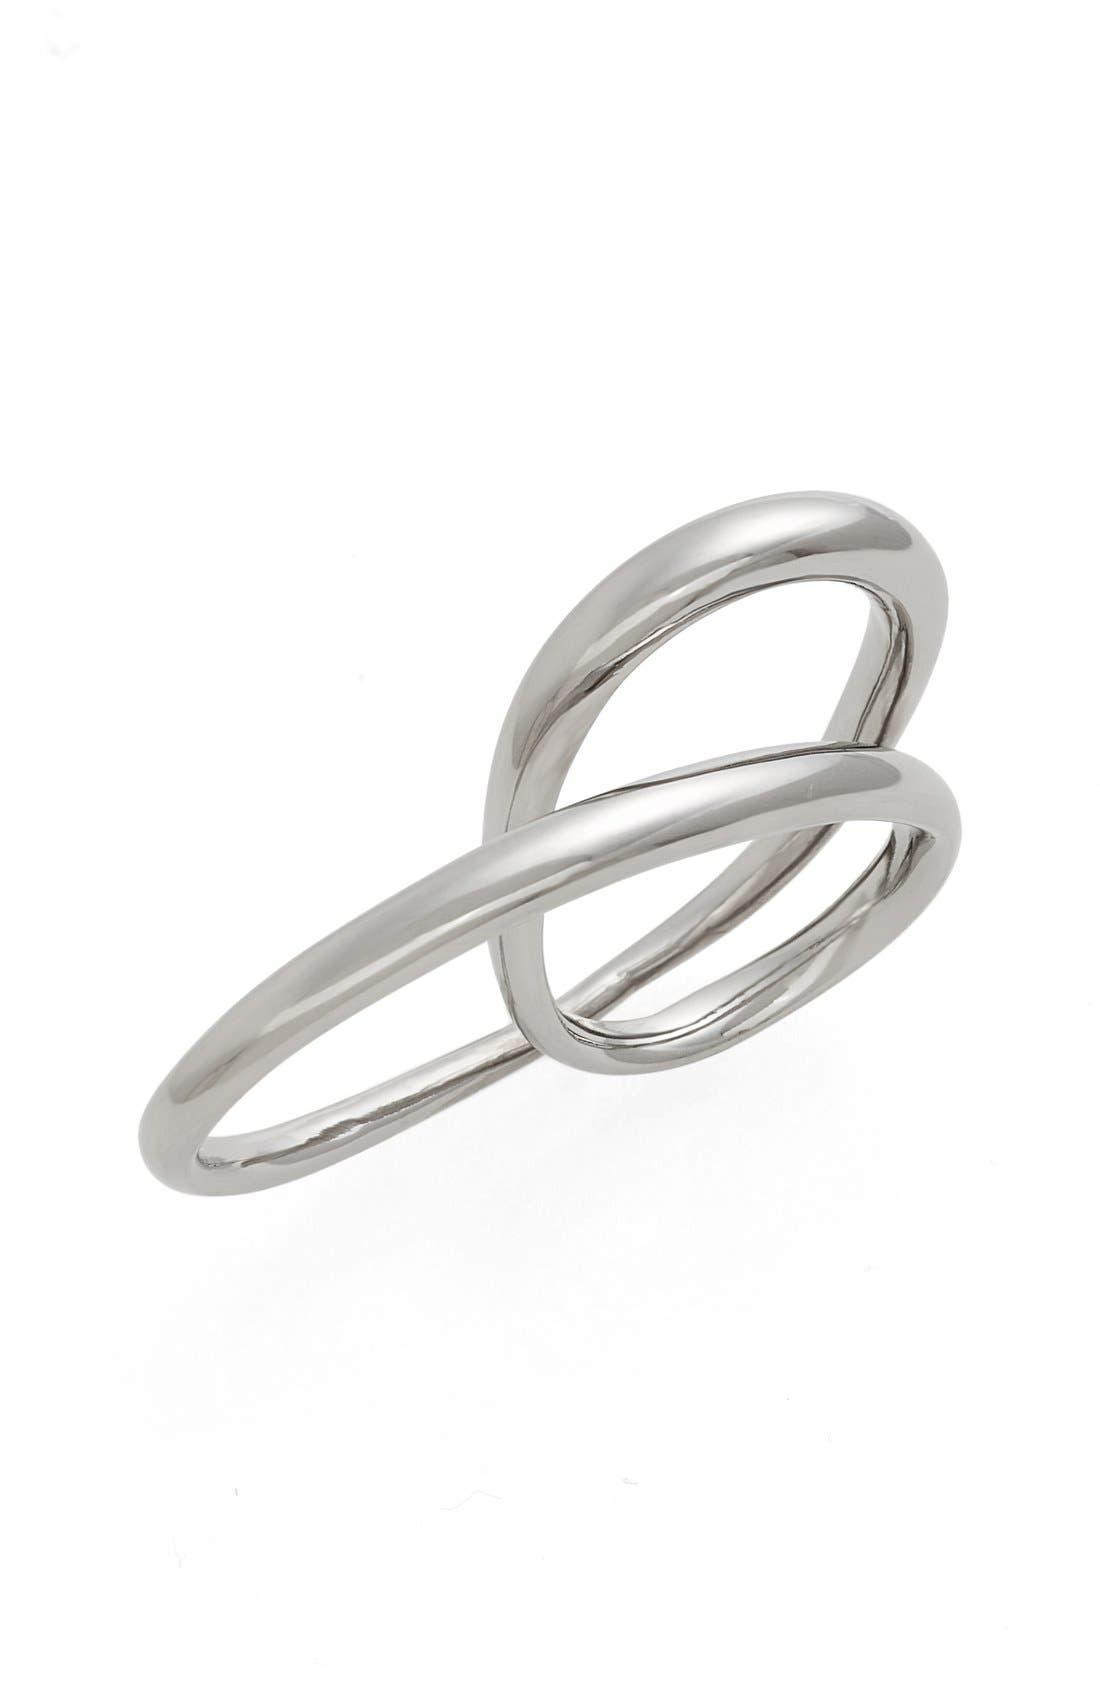 CHARLOTTE CHESNAIS 'Heart' Ring